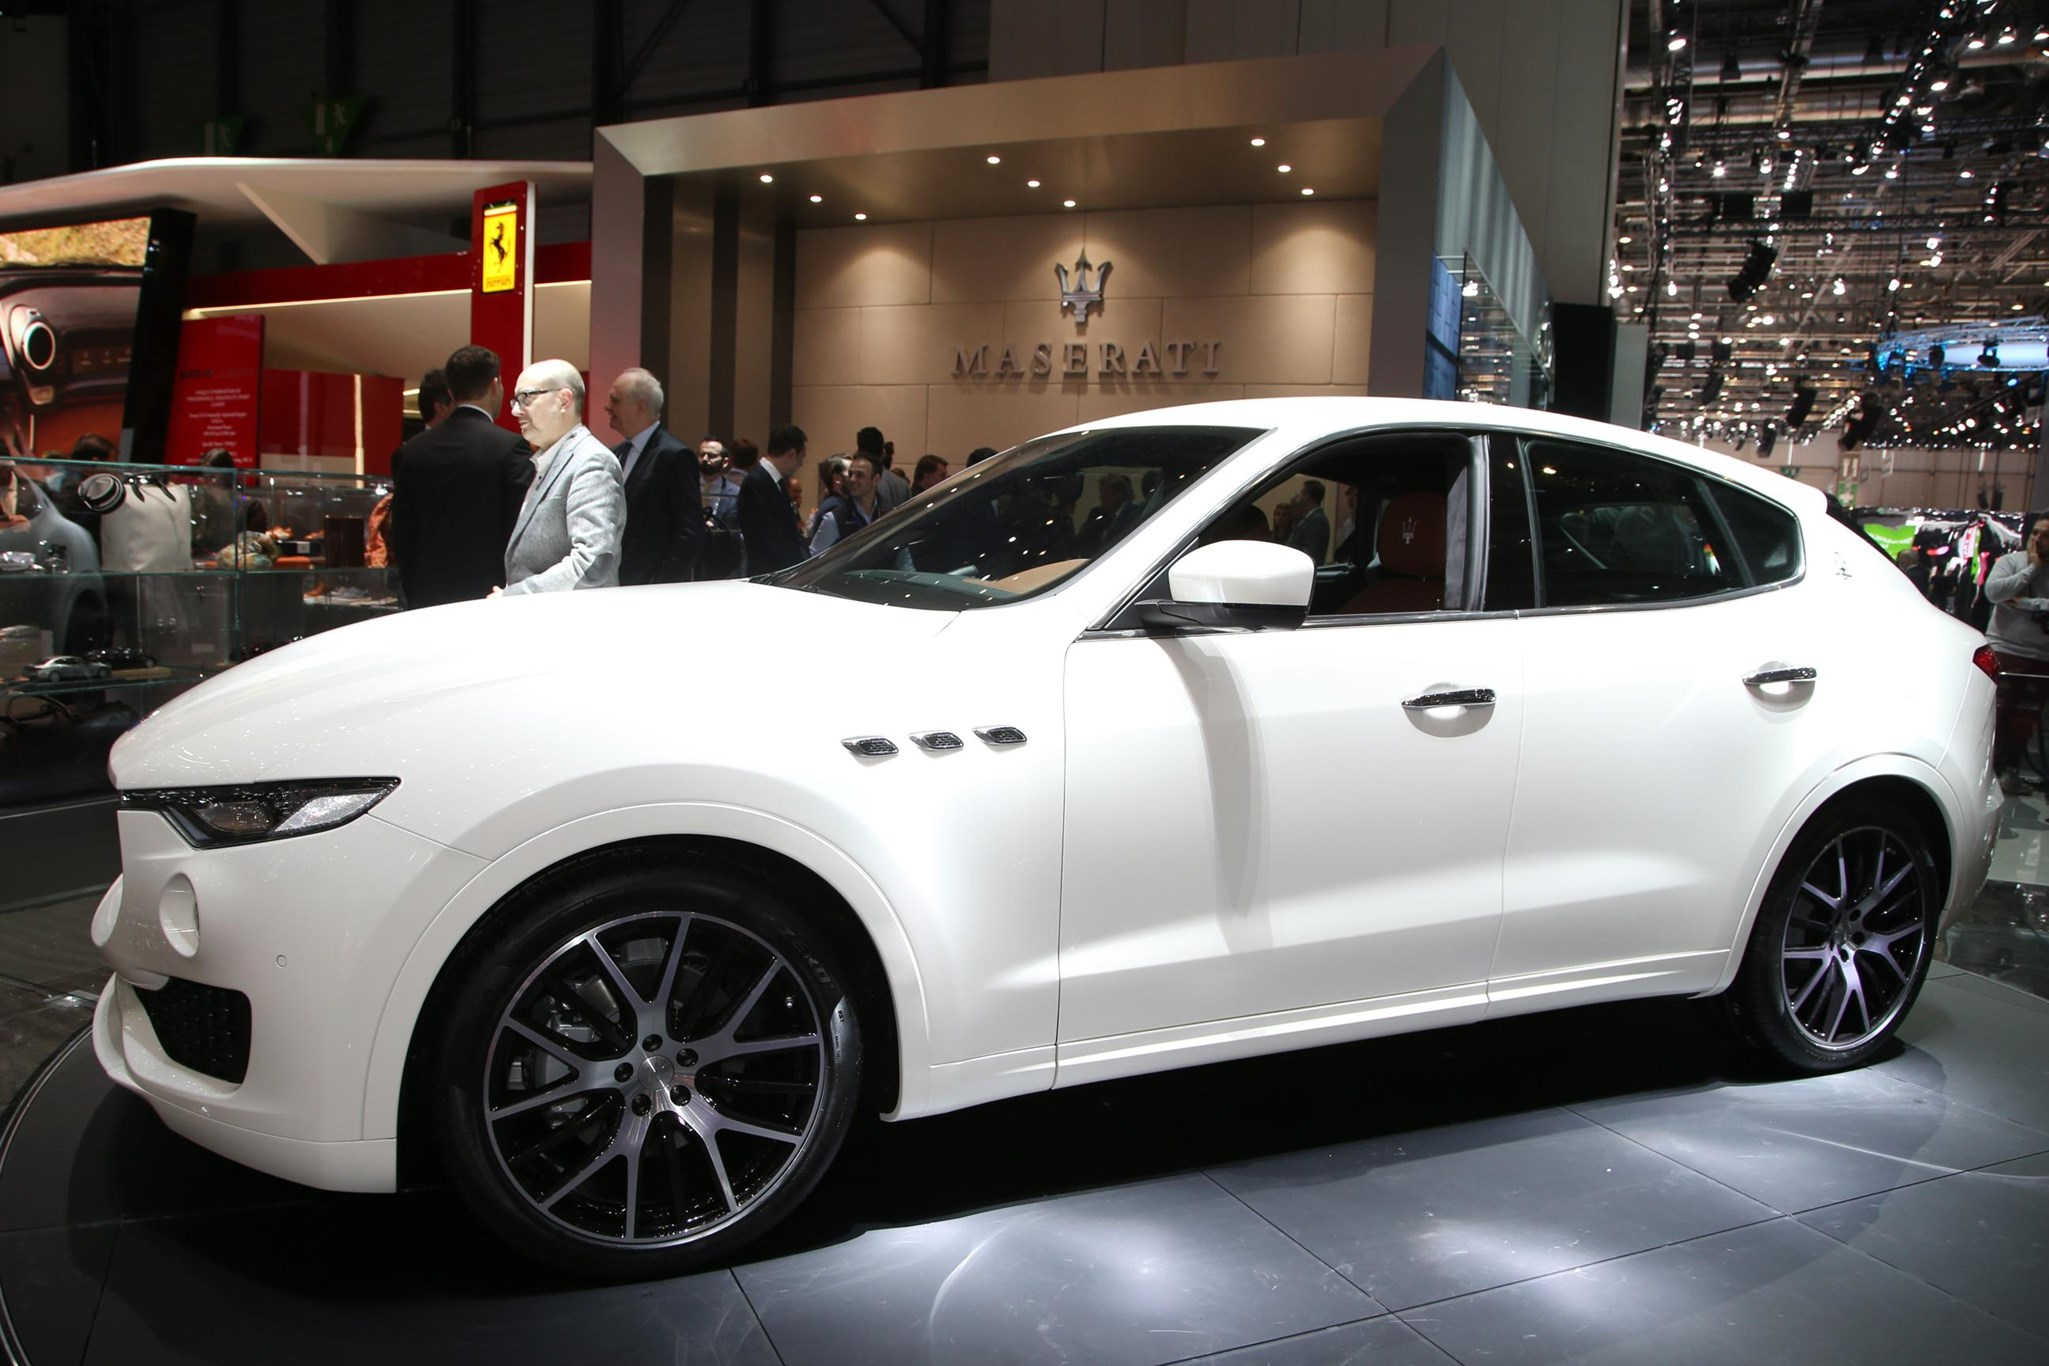 Cars That Start With W >> Maserati S First Suv Will Be Diesel Only For The Uk Car